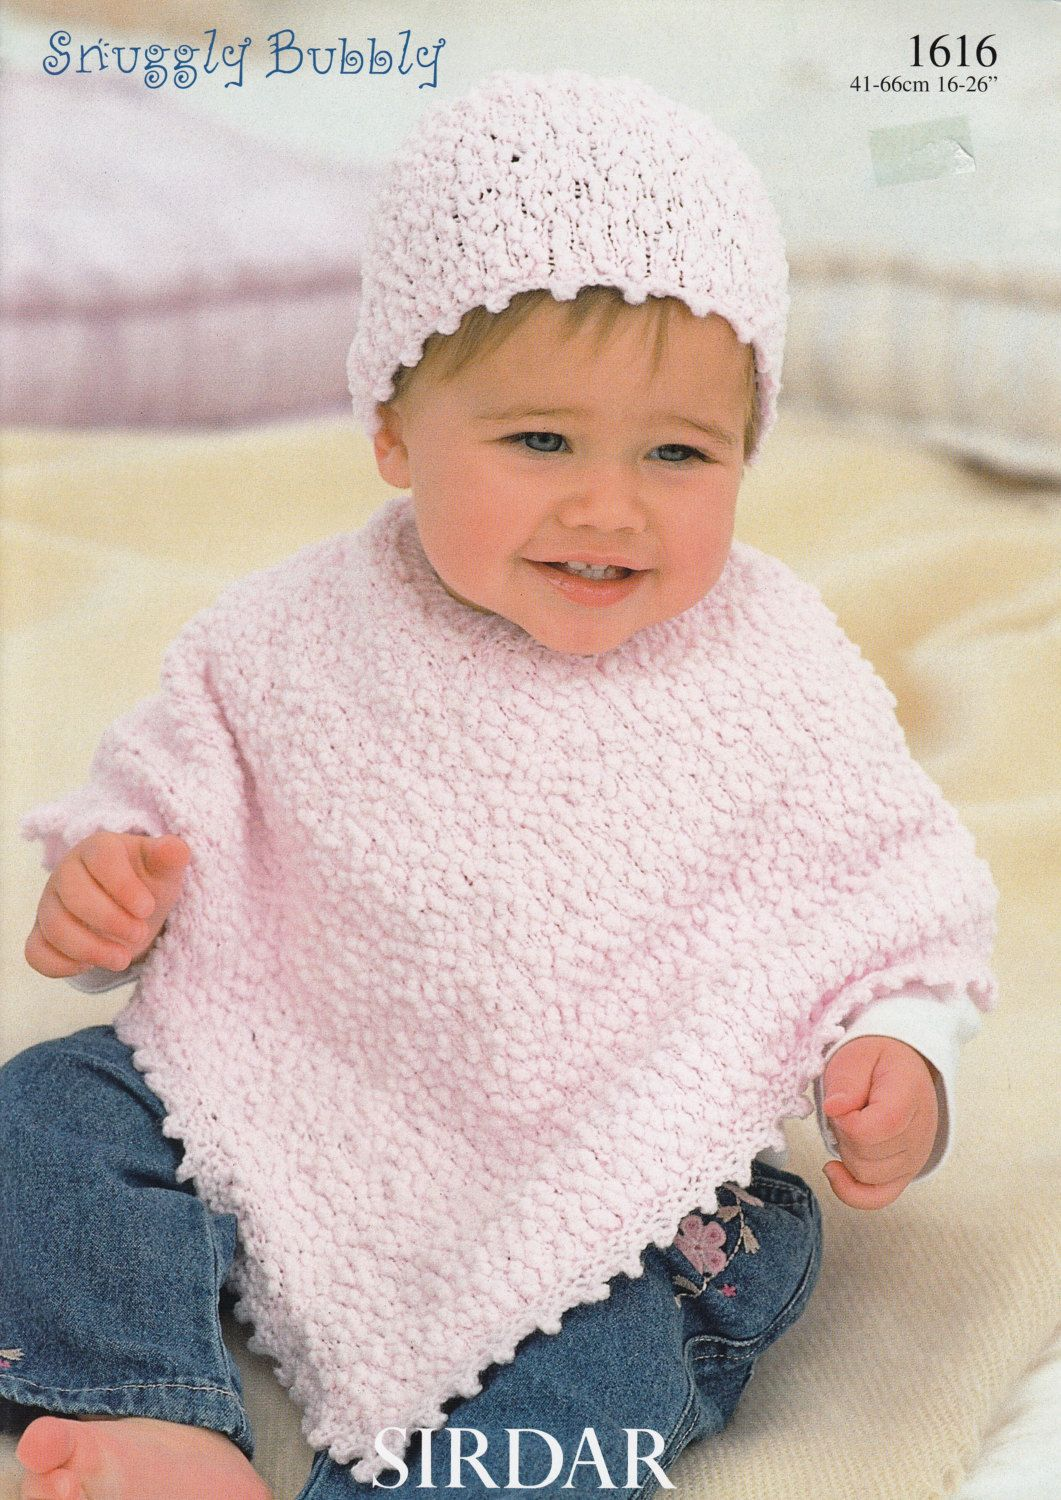 Baby poncho knitting pattern sirdar snuggly bubbly 1616 baby baby poncho knitting pattern sirdar snuggly bubbly 1616 baby poncho hat knitting pattern bankloansurffo Choice Image